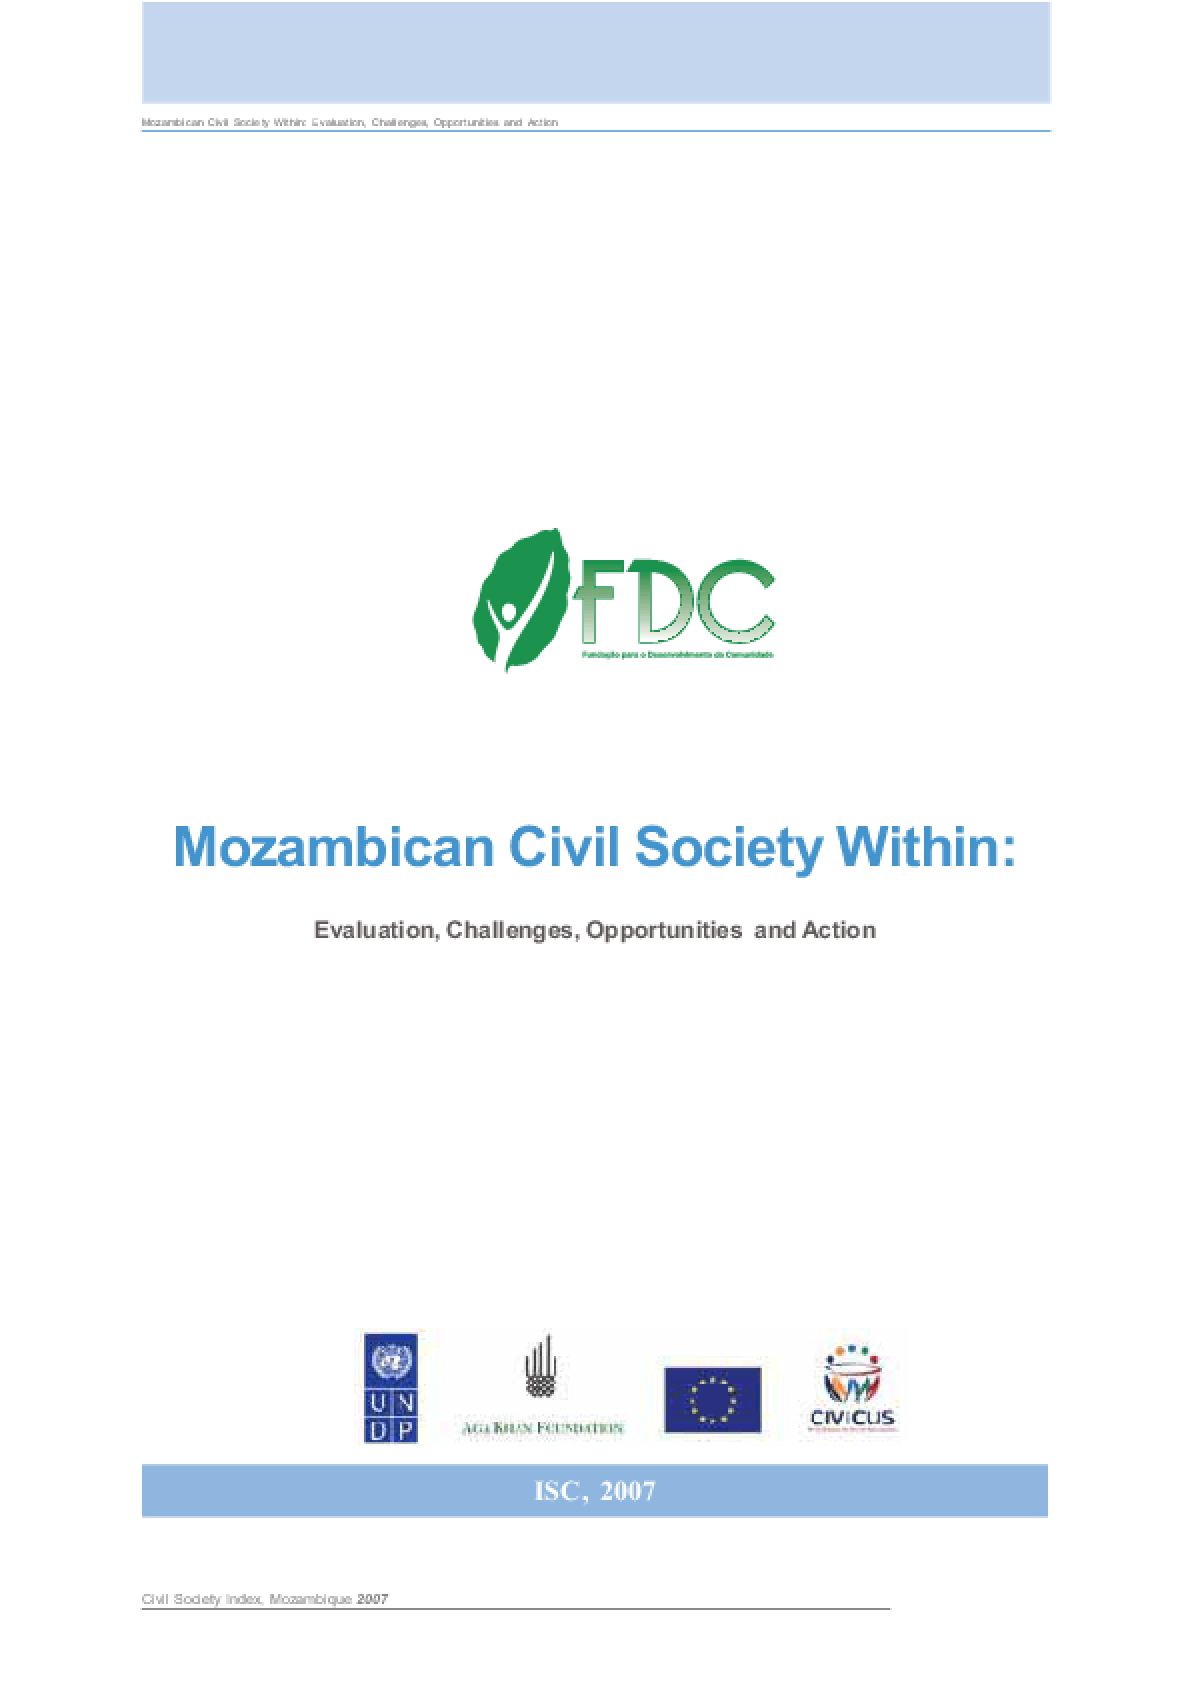 Mozambican Civil Society Within: Evaluation, Challenges, Opportunities and Action